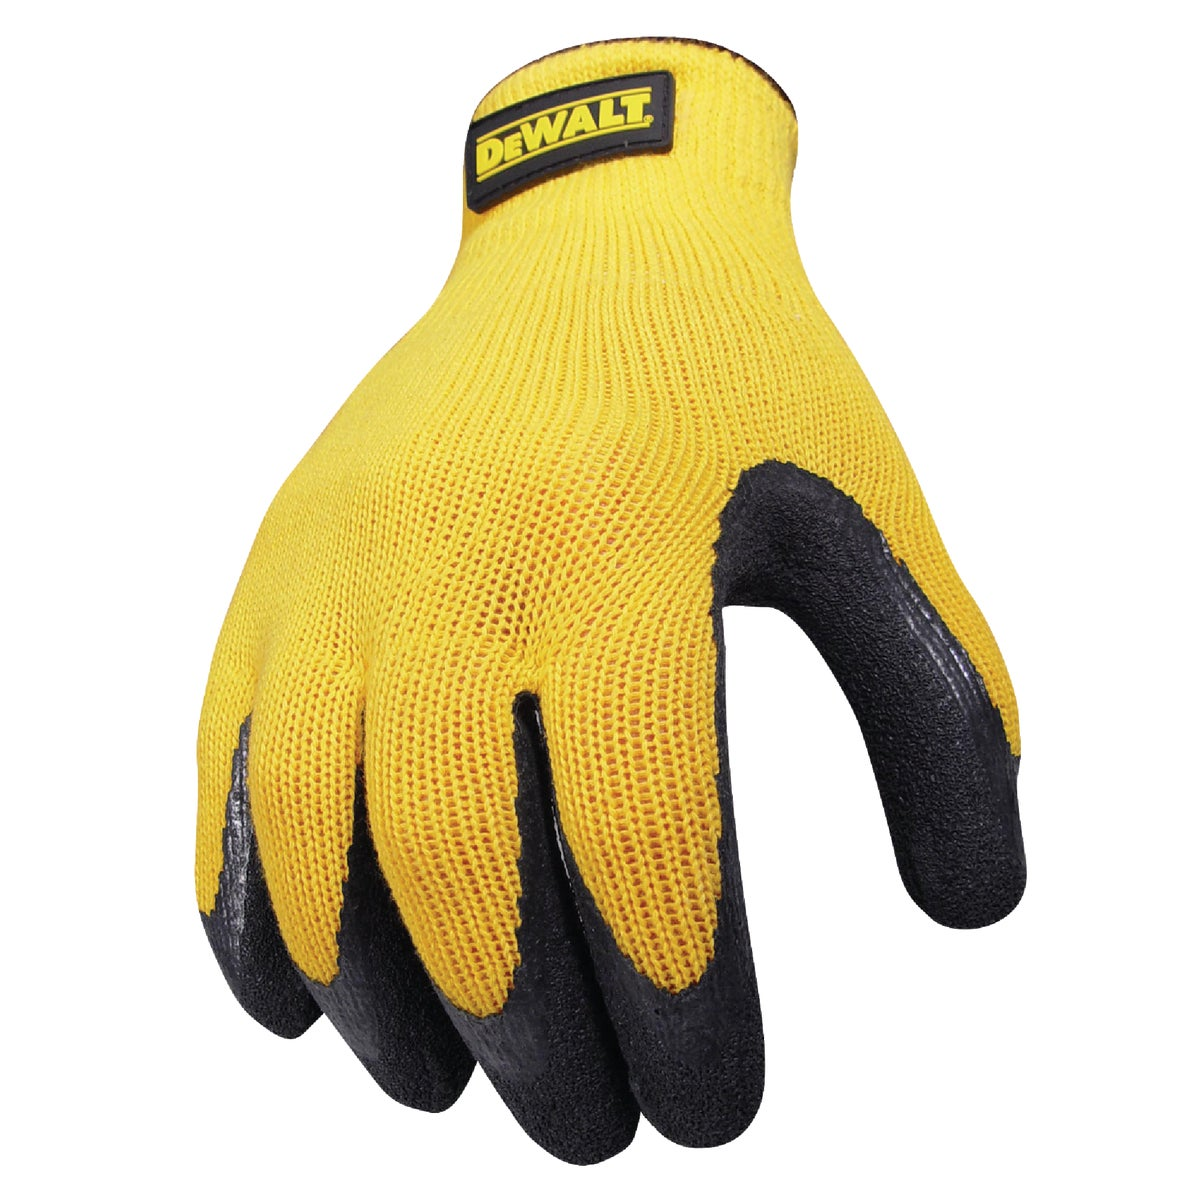 XL RUBBER GRIPPER GLOVE